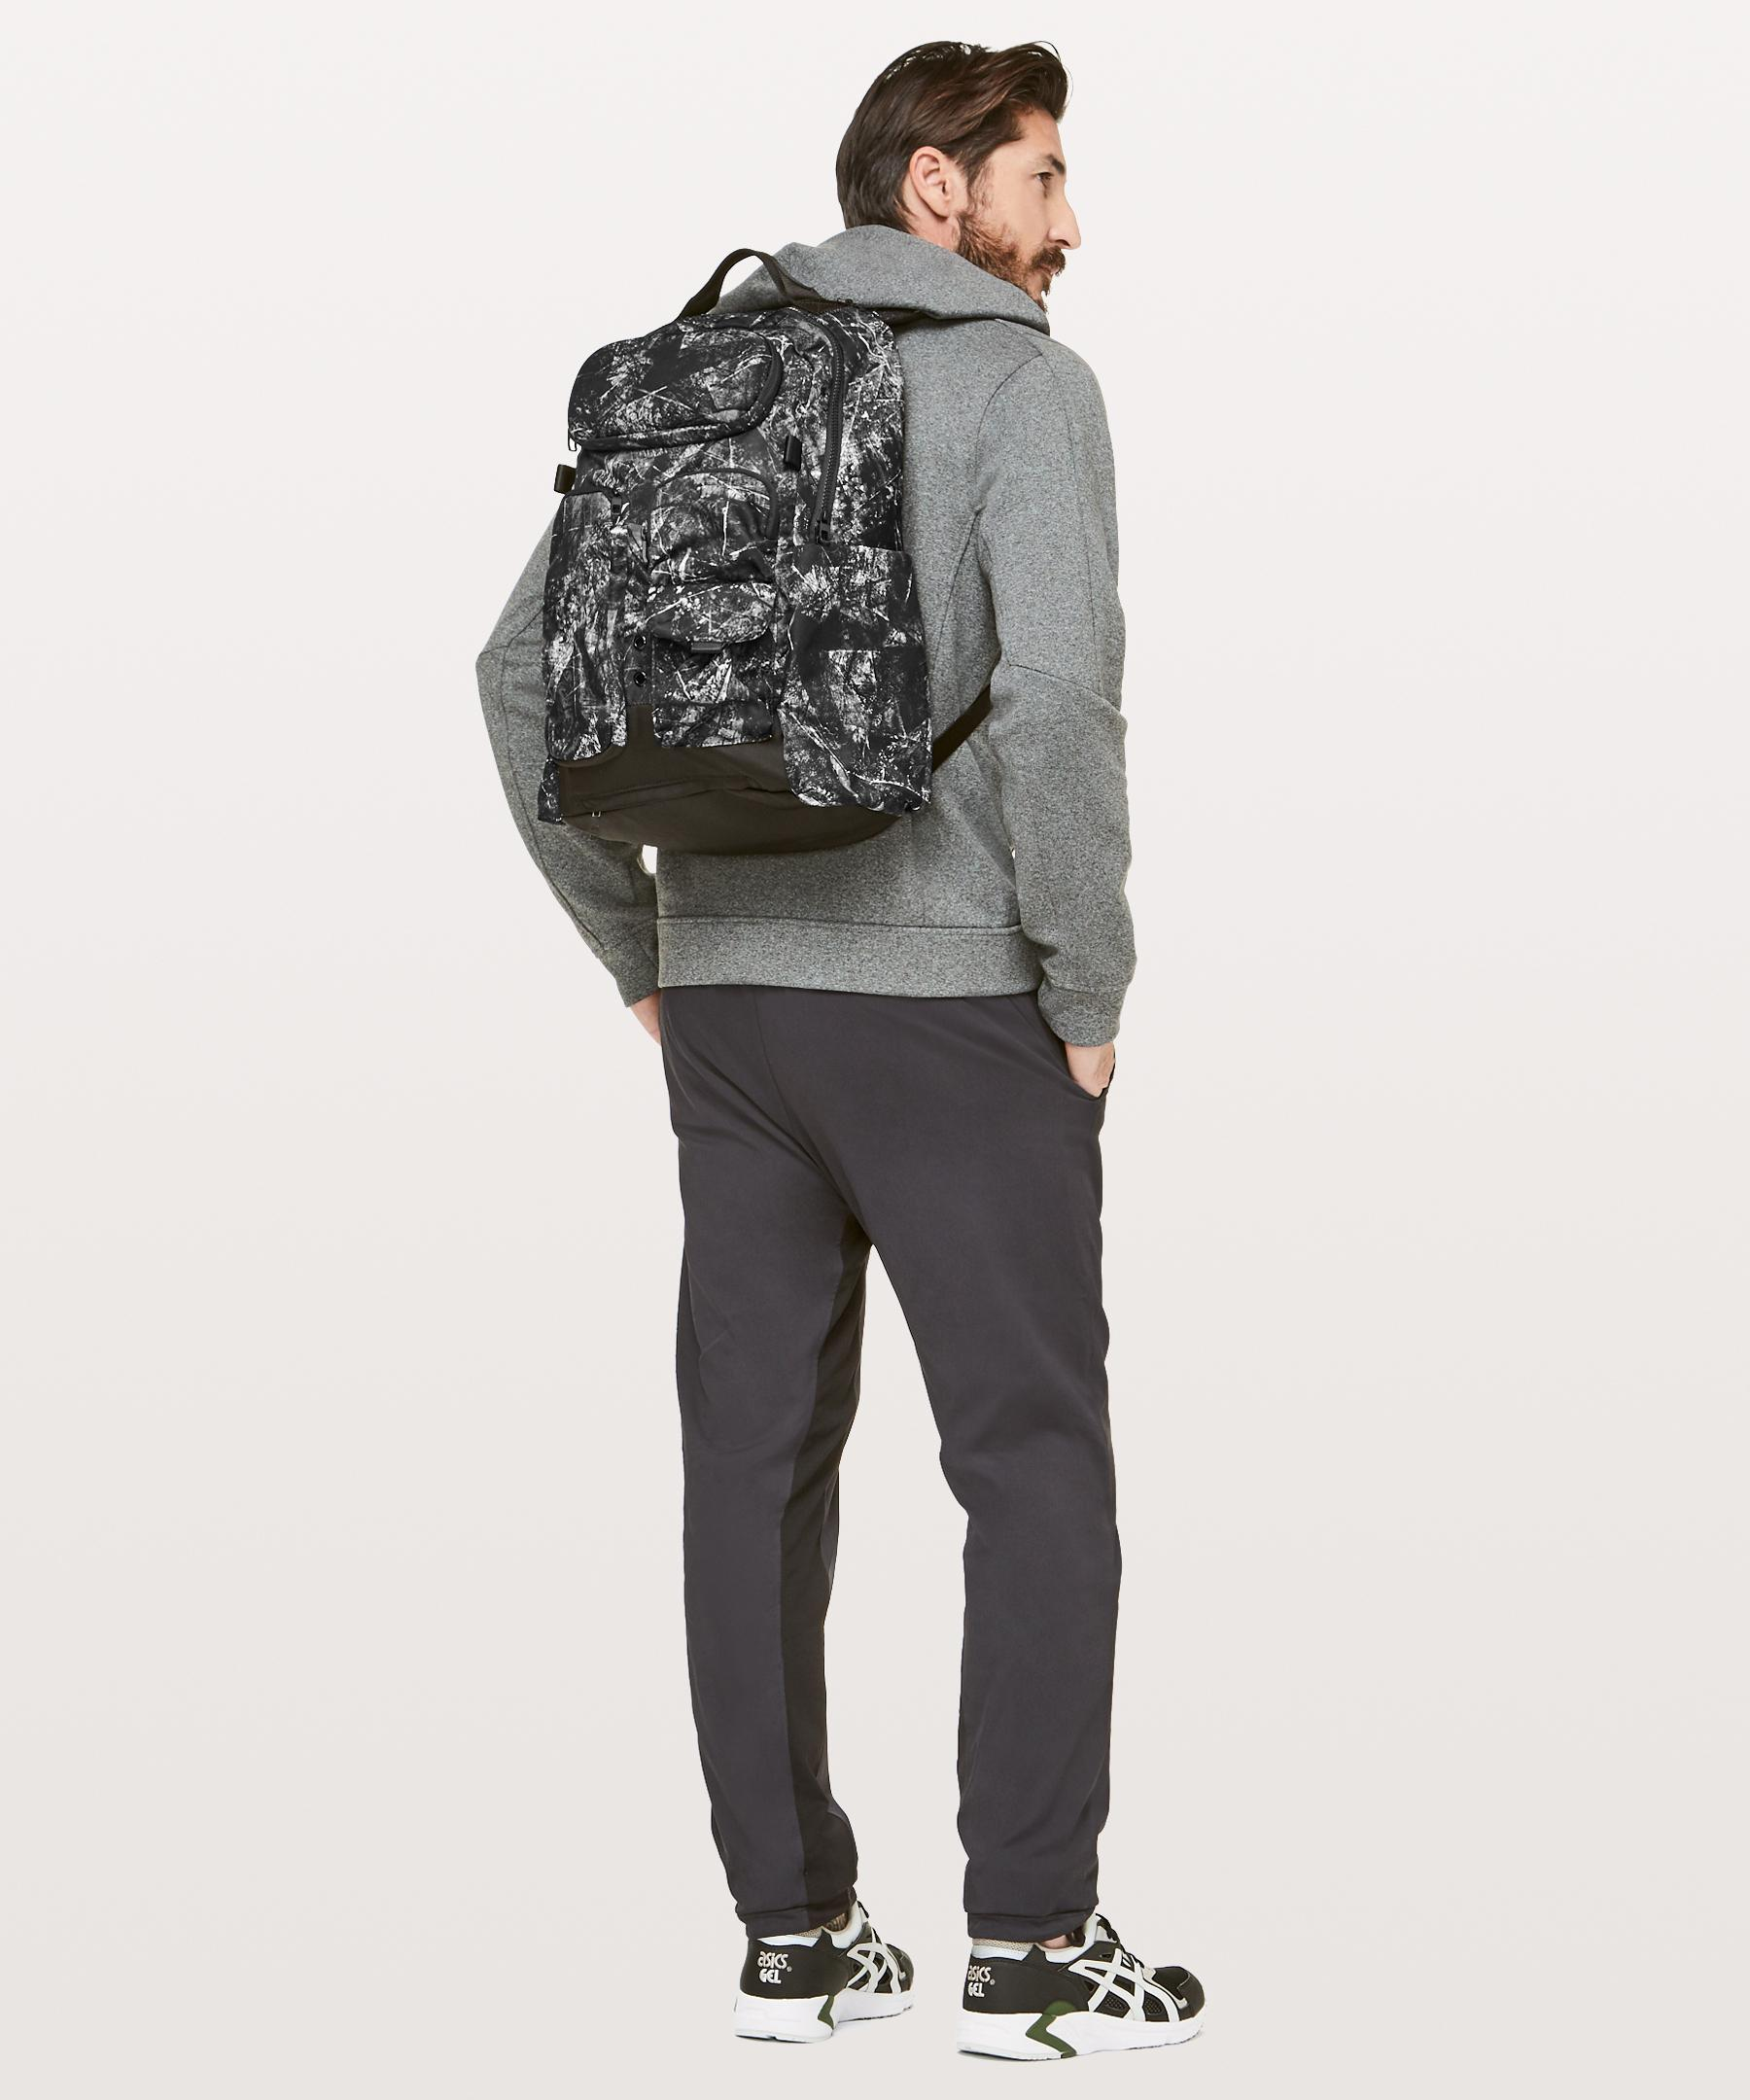 7d9390caeb0 Lululemon Camouflage Backpack   The Shred Centre